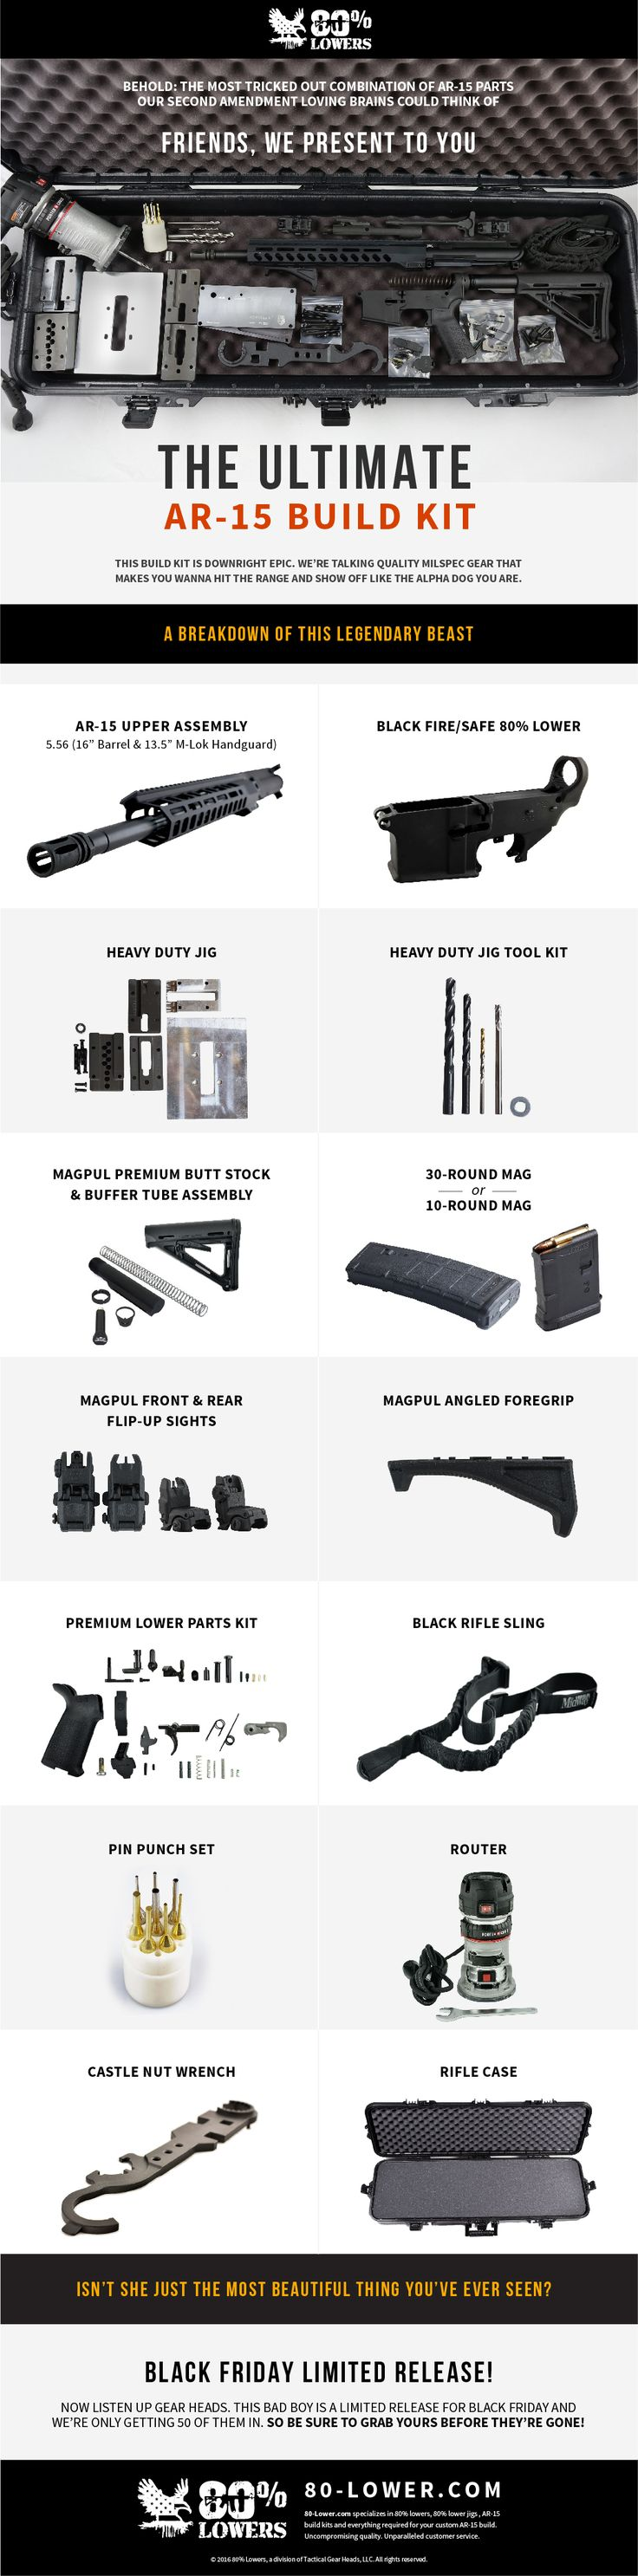 The Ultimate AR-15 Build Kit is downright epic. And we only have 50 of 'em for Black Friday. Guaranteed to be the best present you have ever purchased for the beginner or experienced gunsmith in your life (or for yourself). The kit is engineered to bring you every single pin, spring, tool, drill bit and necessary part you need to complete your own, fully custom AR-15 - in one simple package.